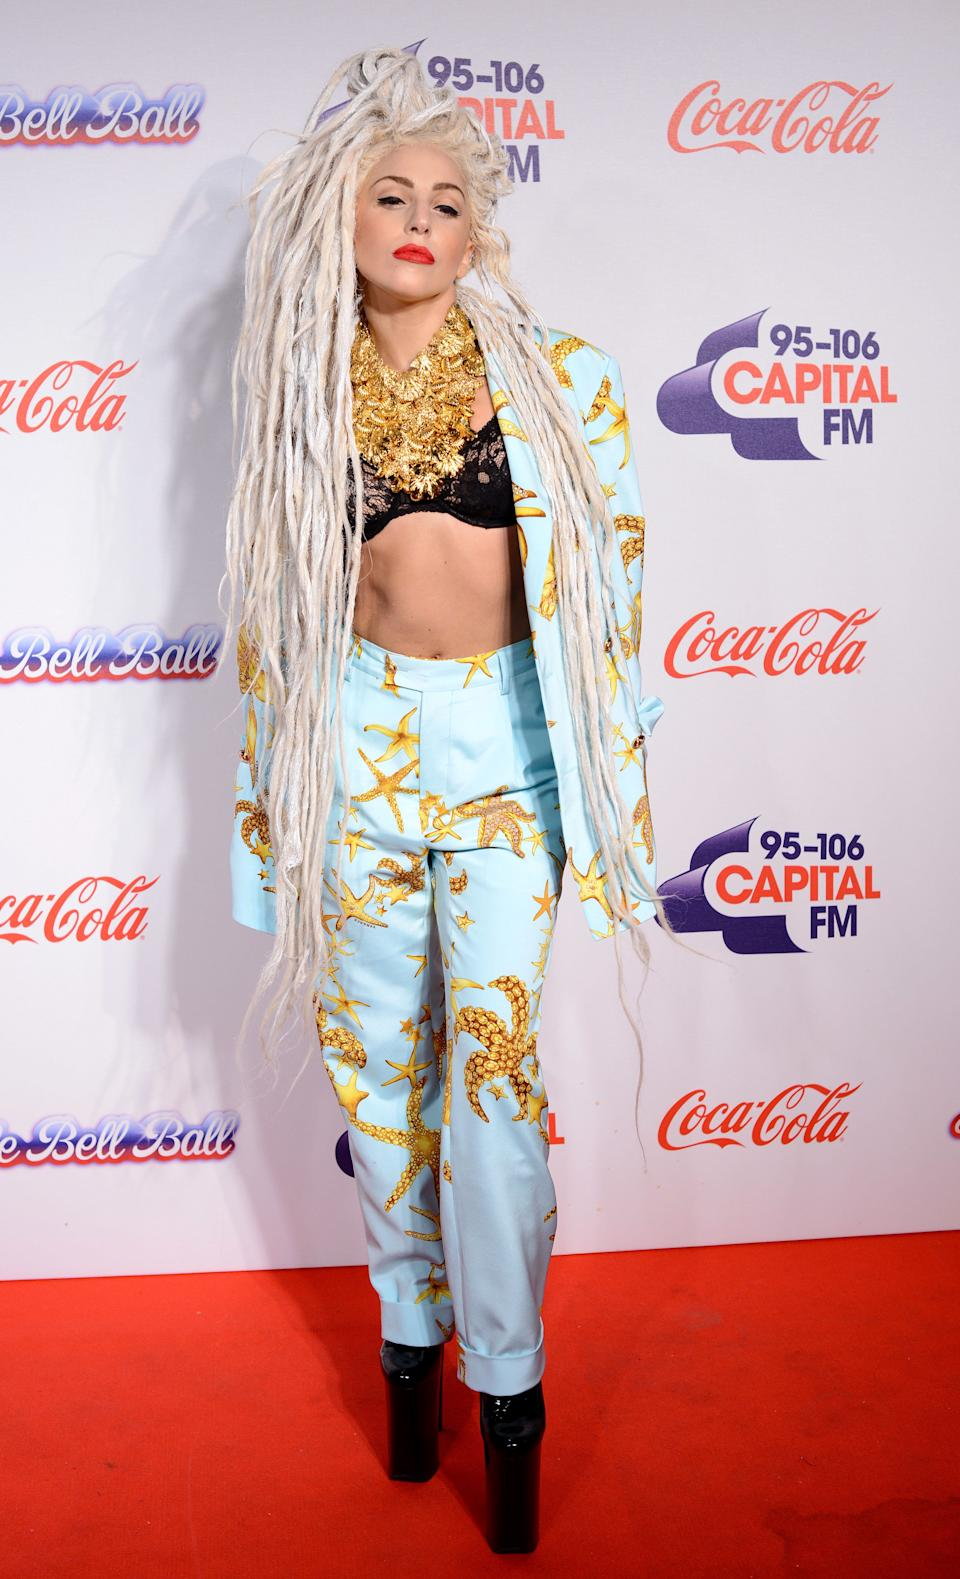 Gaga wears a suit by Versace at Capital FM's Jingle Bell Ball on Dec. 8, 2013, in London.